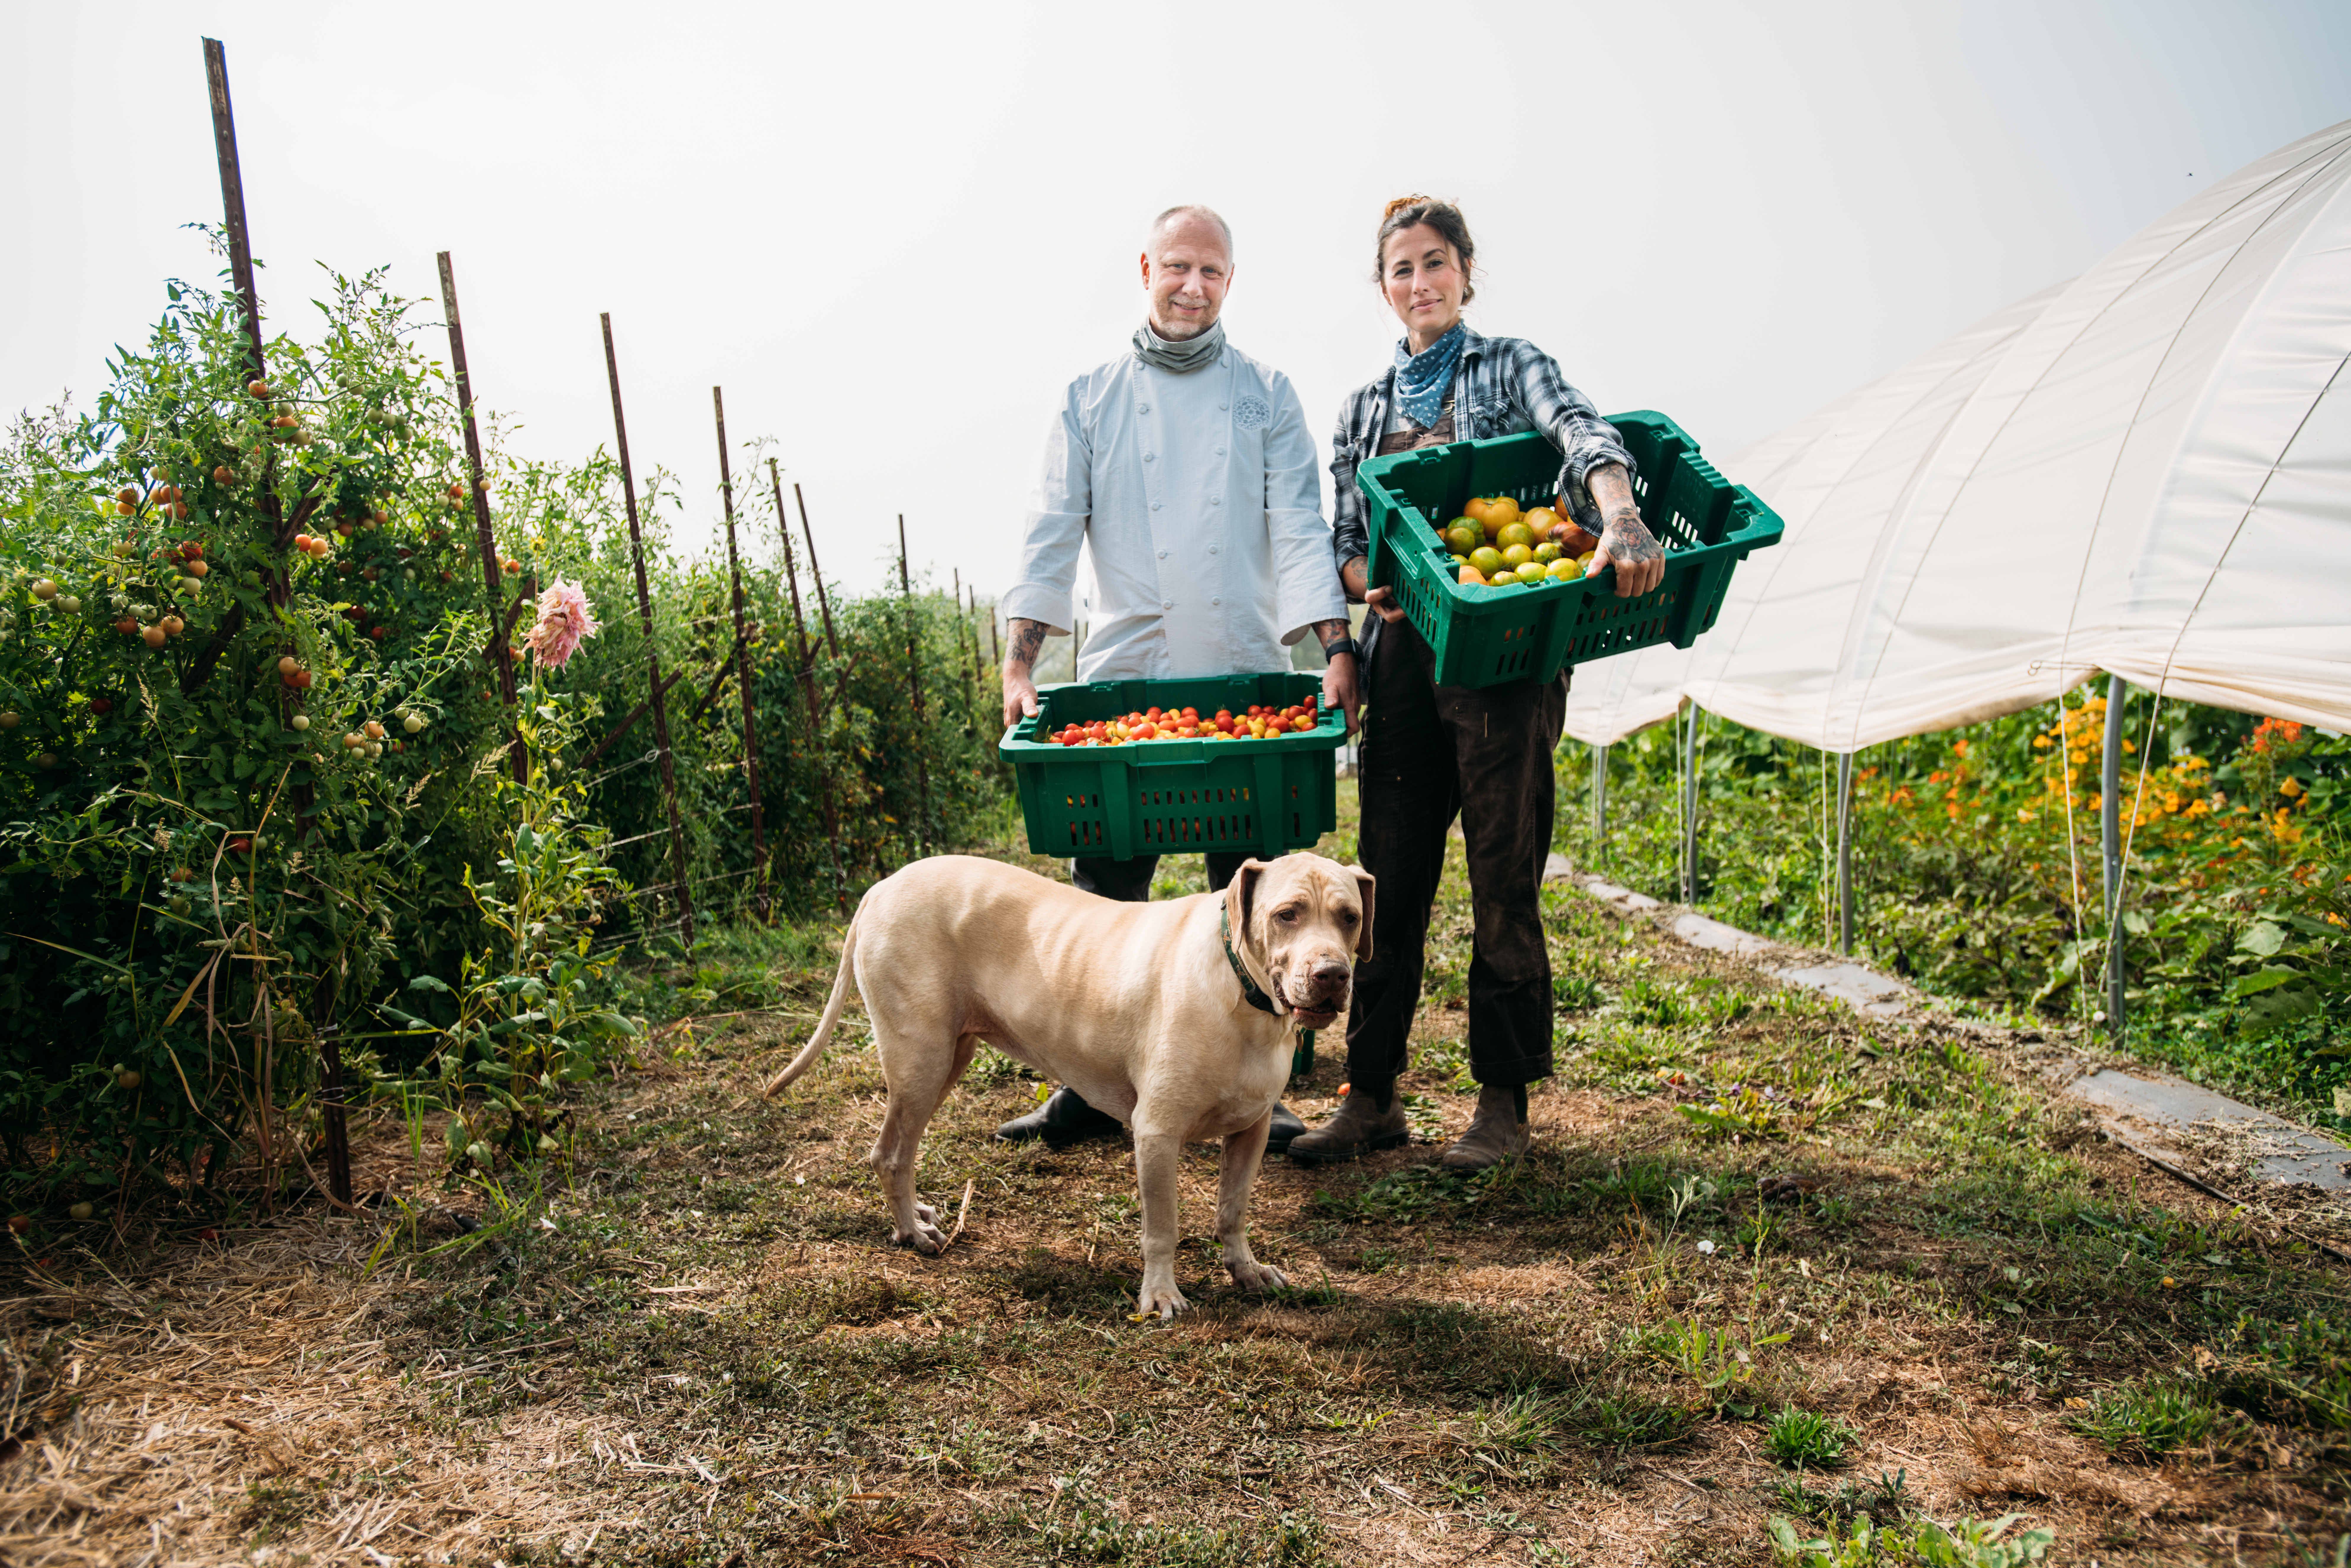 Kyle and Katina Connaughton stand with their dog in a field at SingleThread Farm. Both hold baskets of tomatoes; Kyle wears his chef's coat and Katina wears overalls.